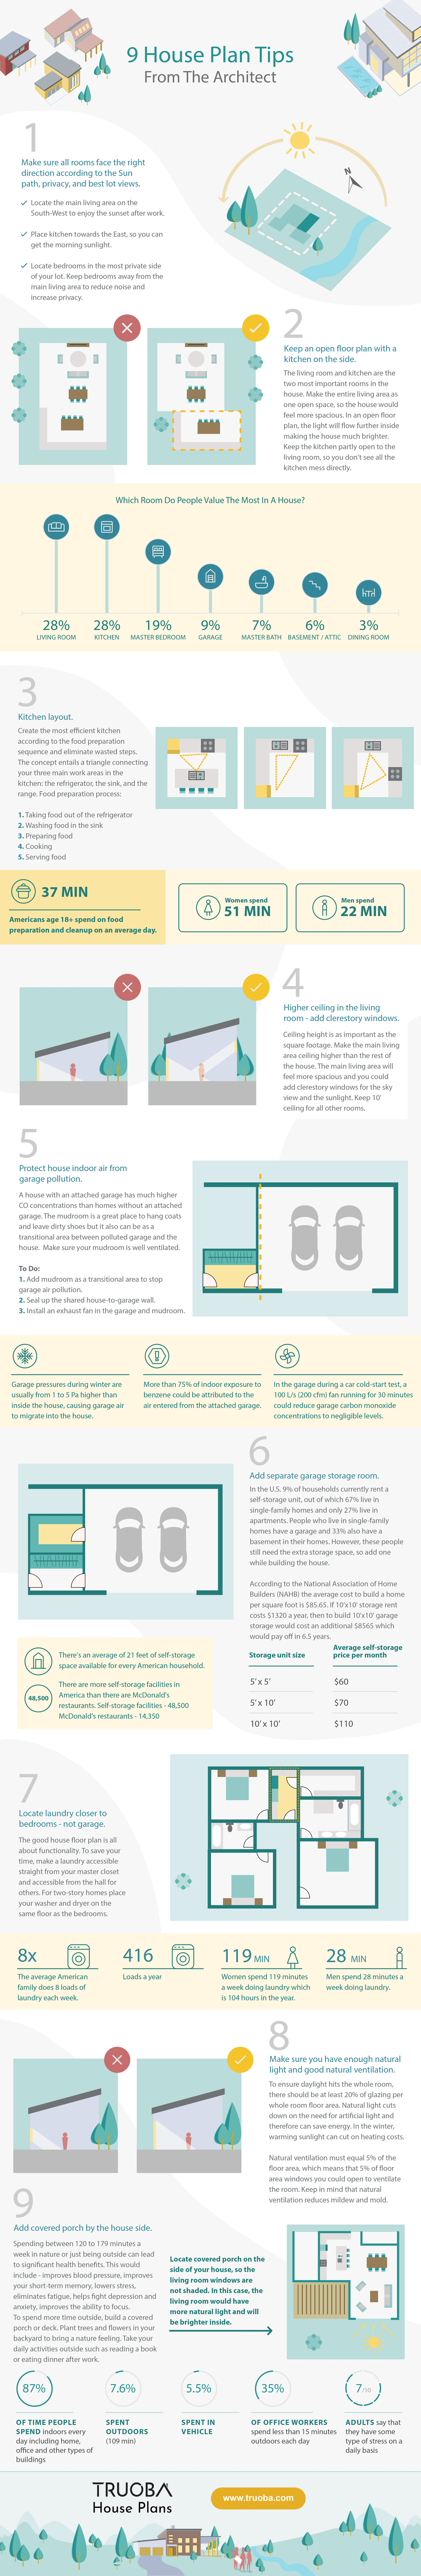 Truoba-9-house-plan-tips-infographic-plaza